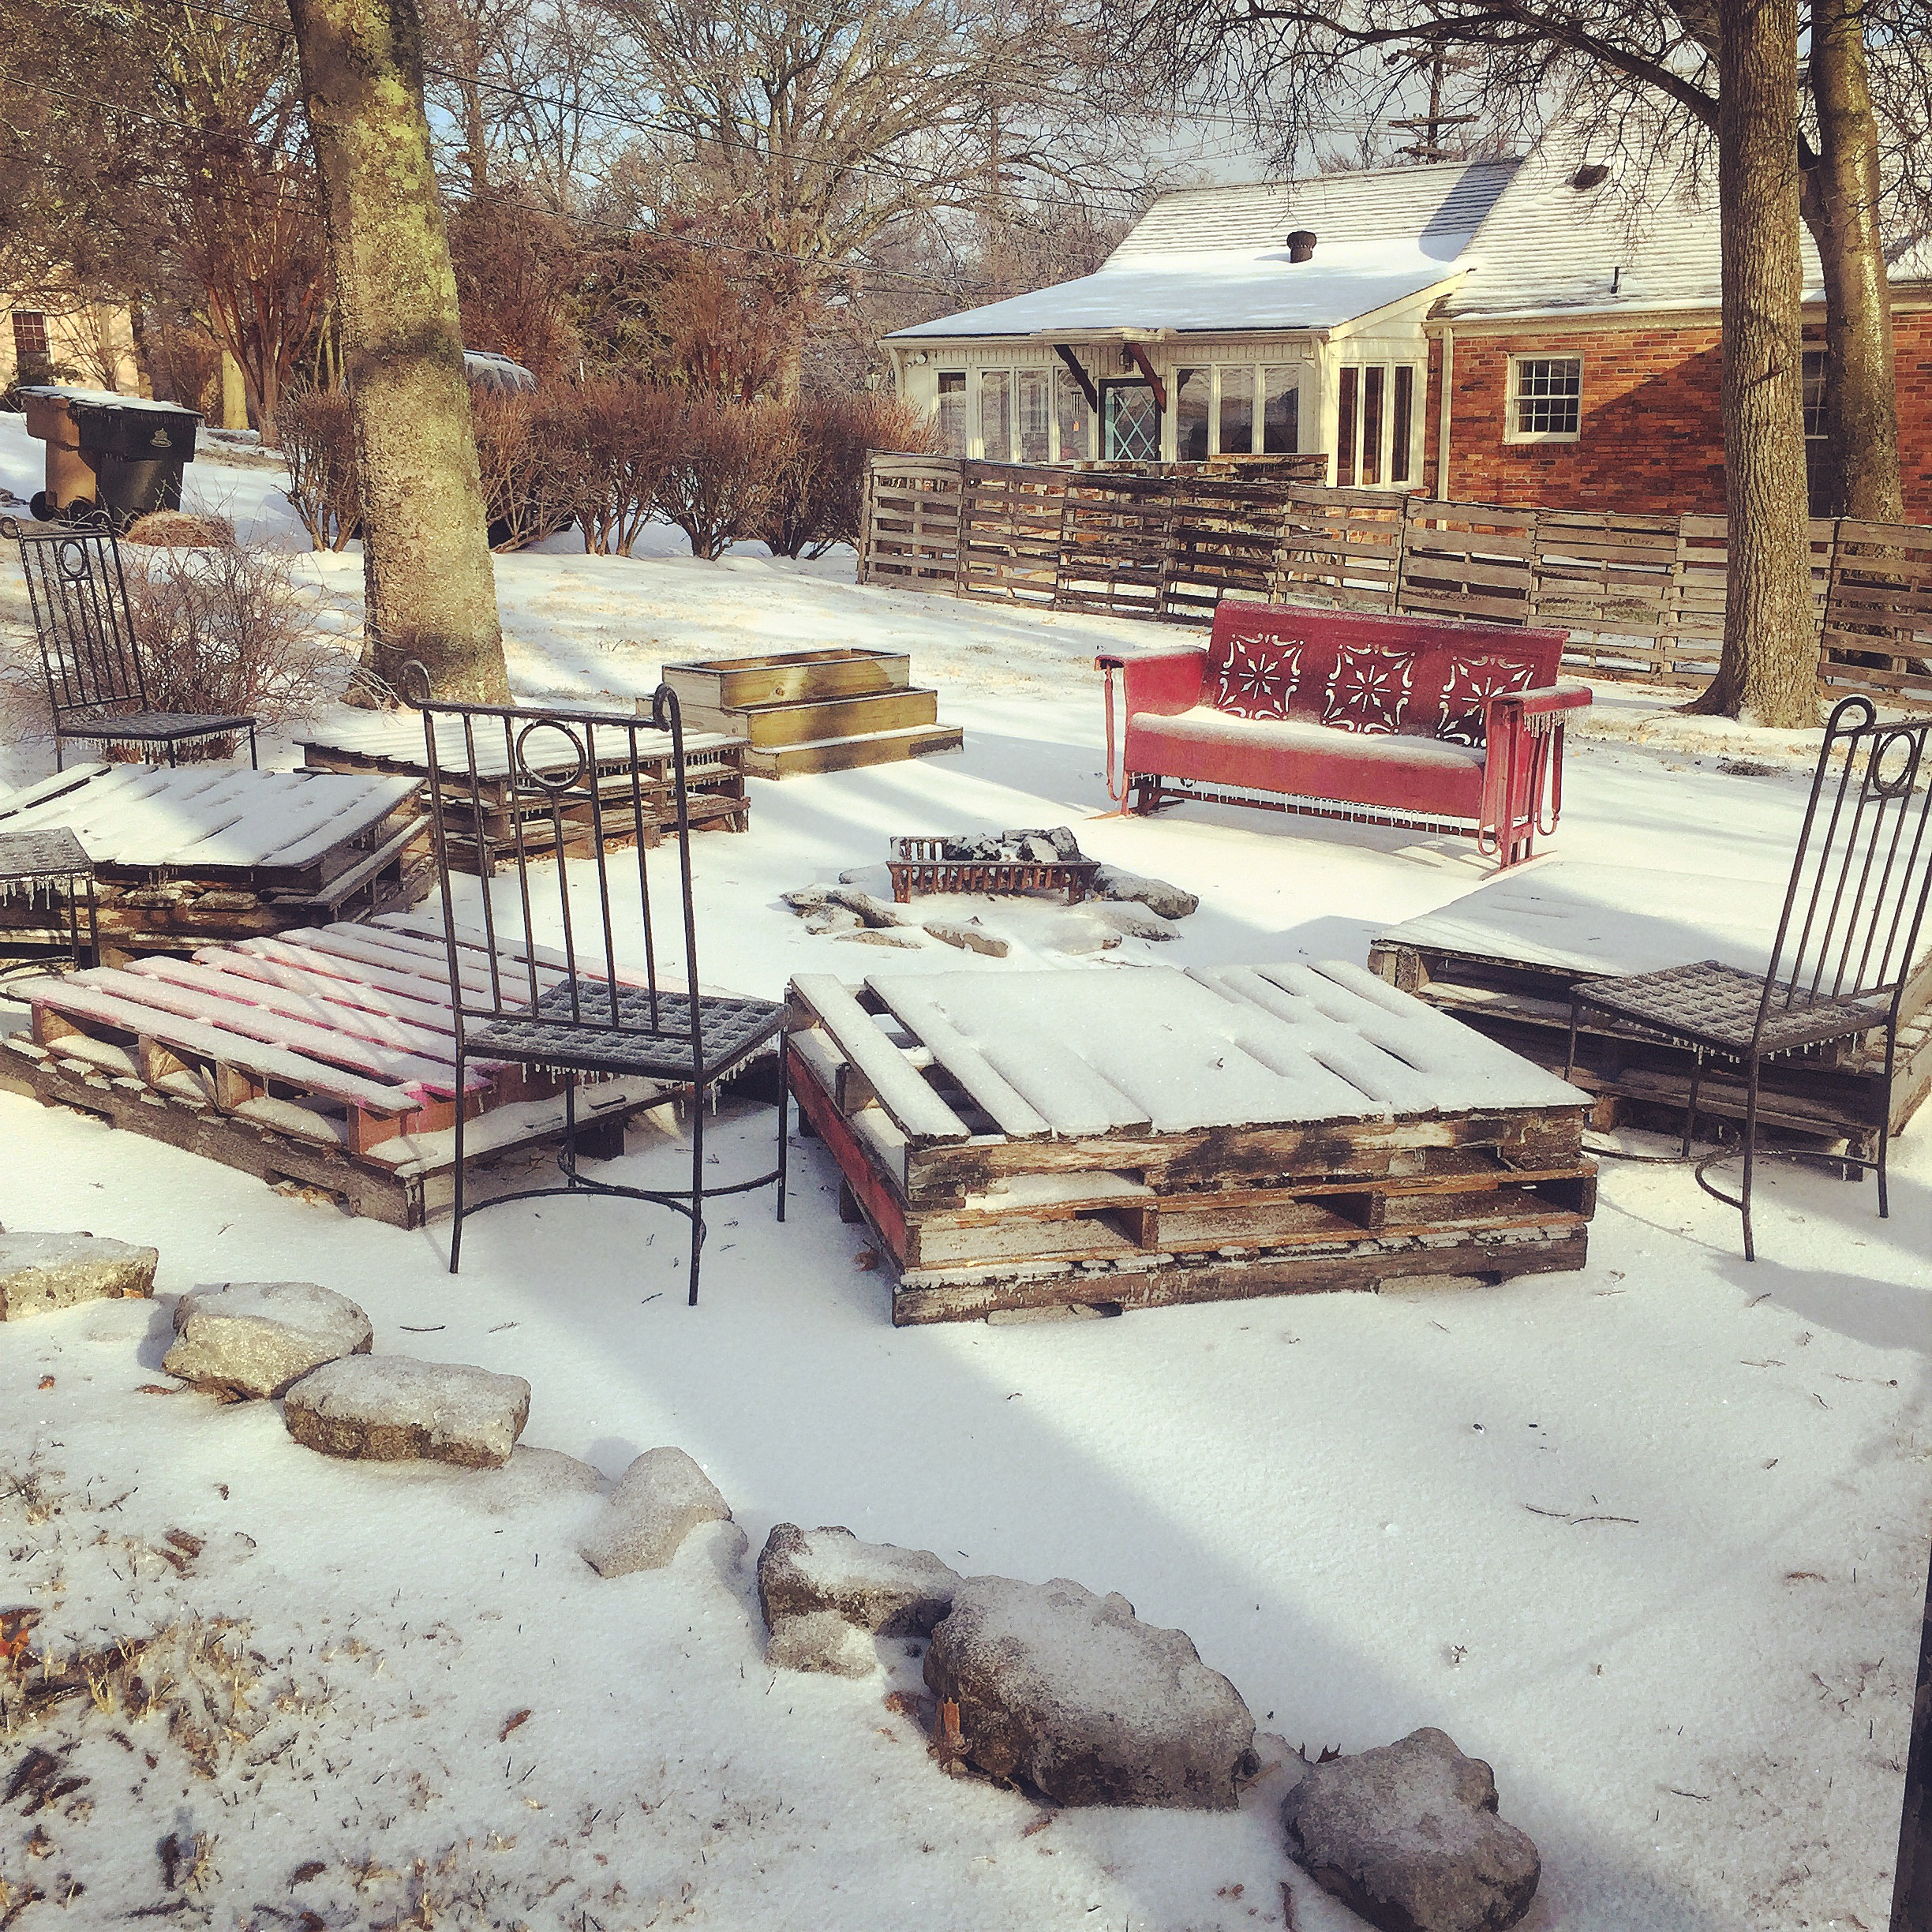 the fire pit in winter.